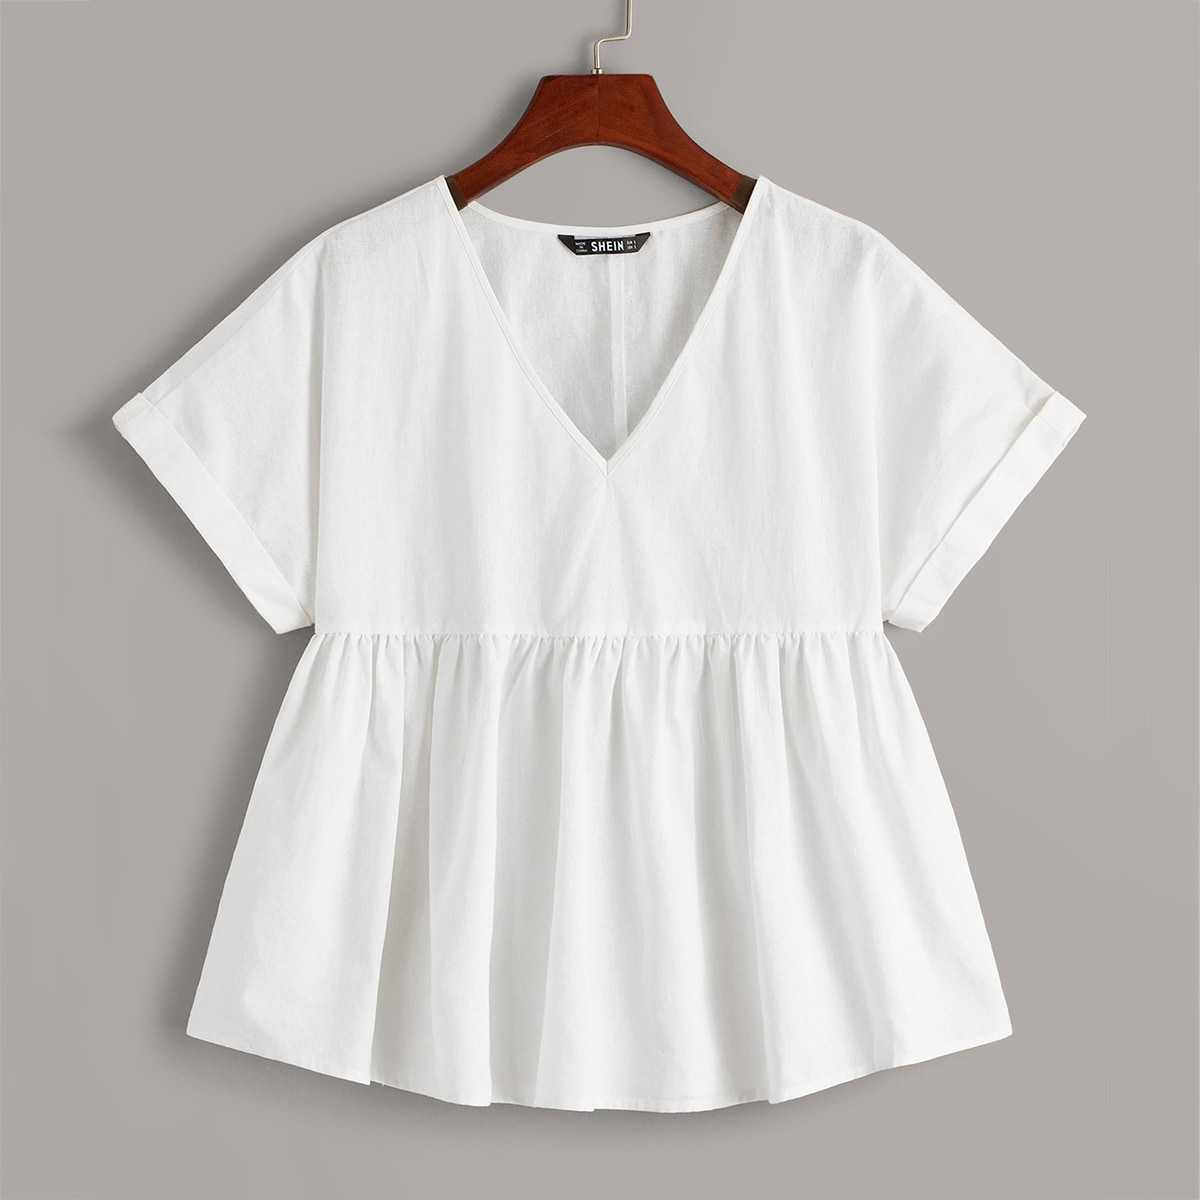 V-neck Rolled Cuff Smocked Blouse in White by ROMWE on GOOFASH